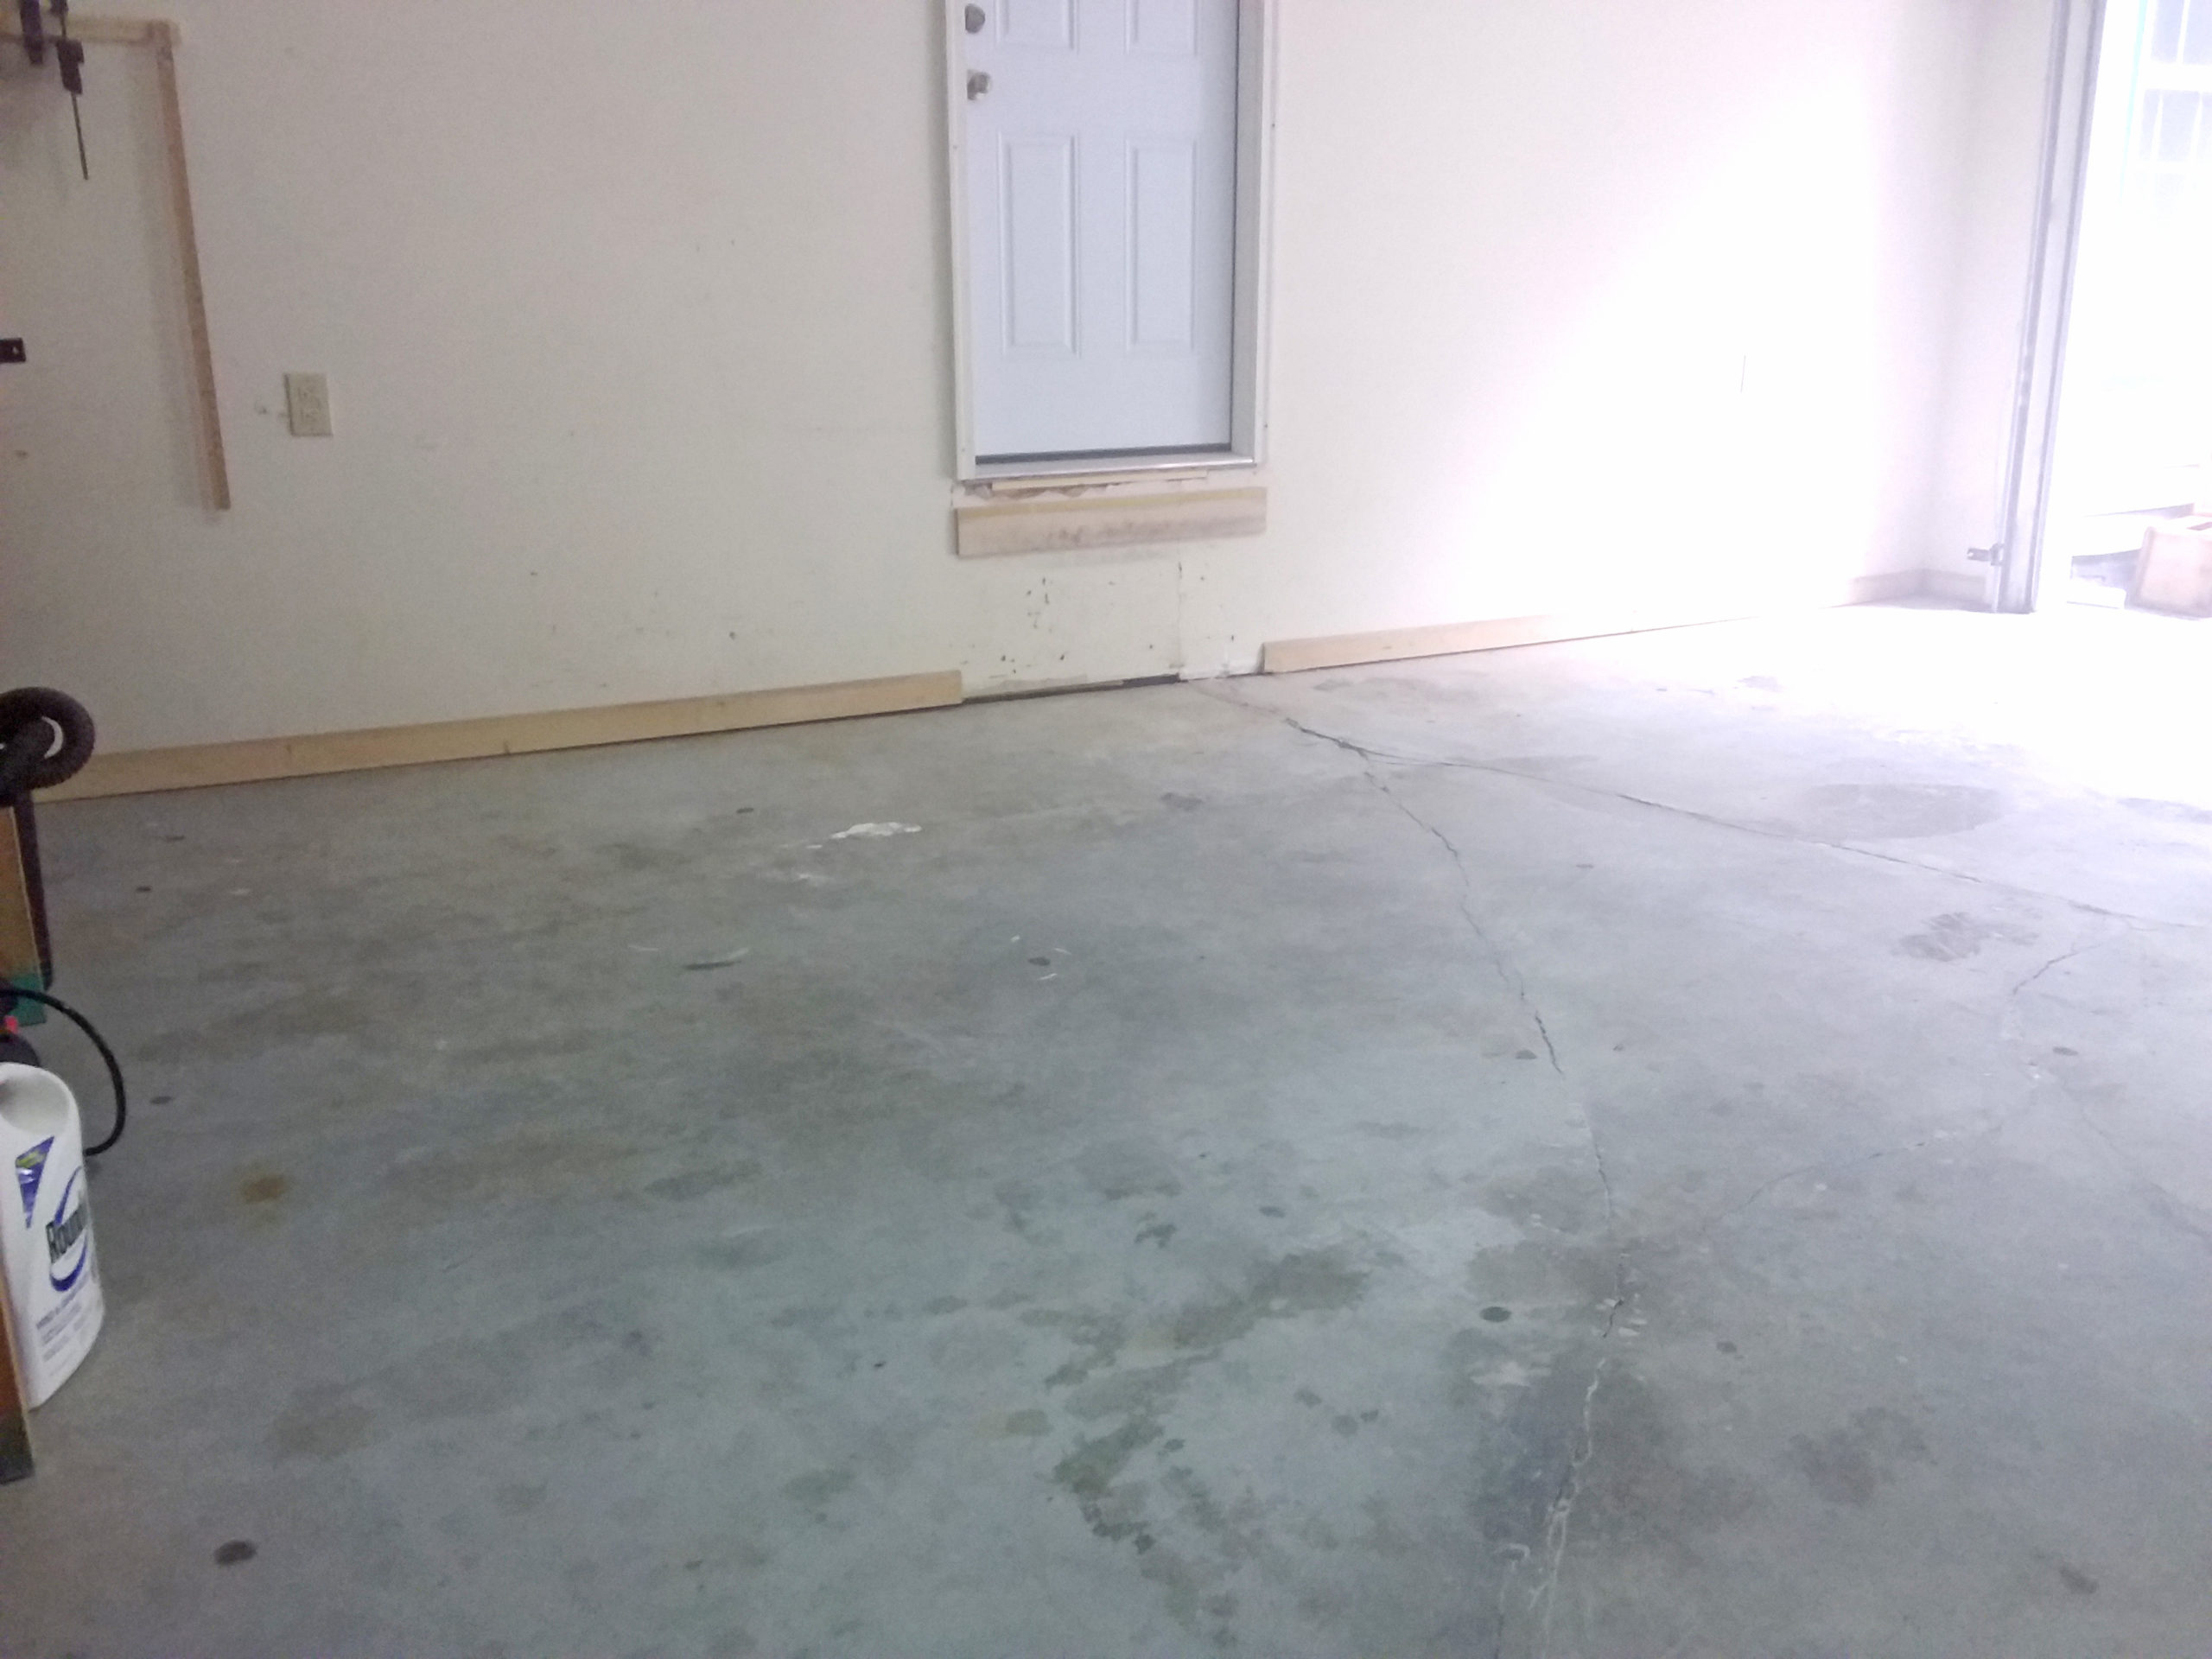 Concrete Leveling with Wall Gap after